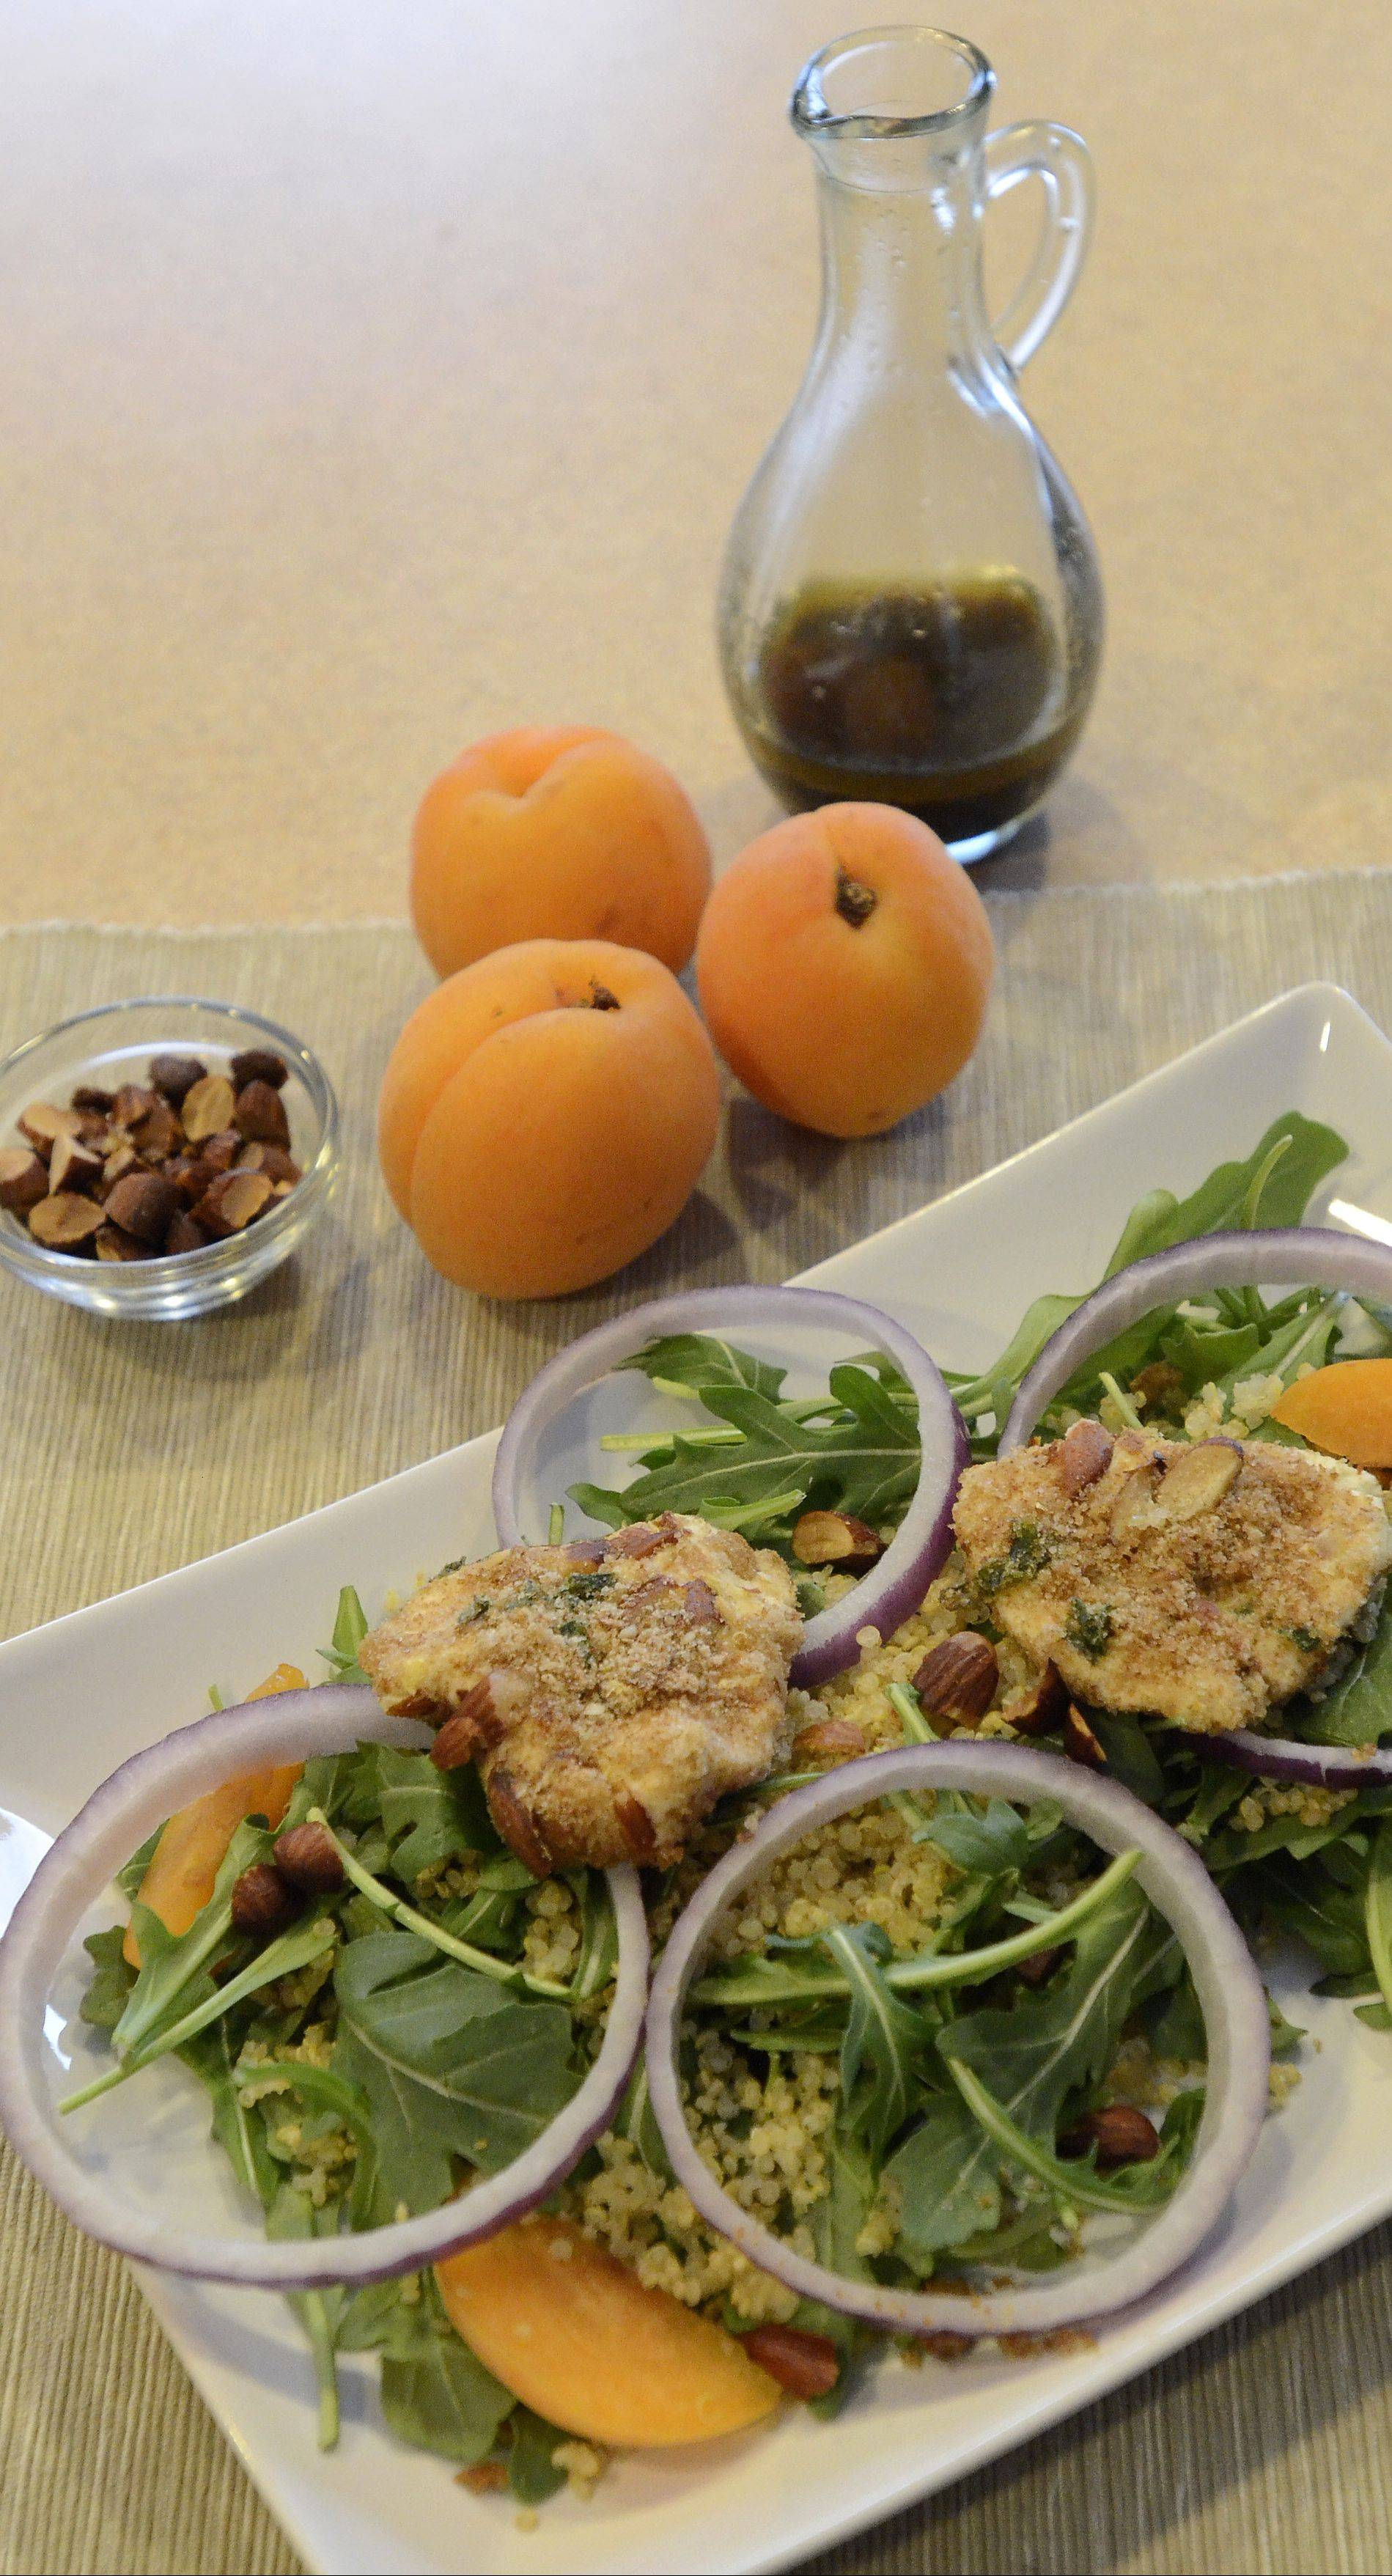 Spring Arugula Salad gets an antioxidant boost from sliced apricots and almond-crusted goat cheese.